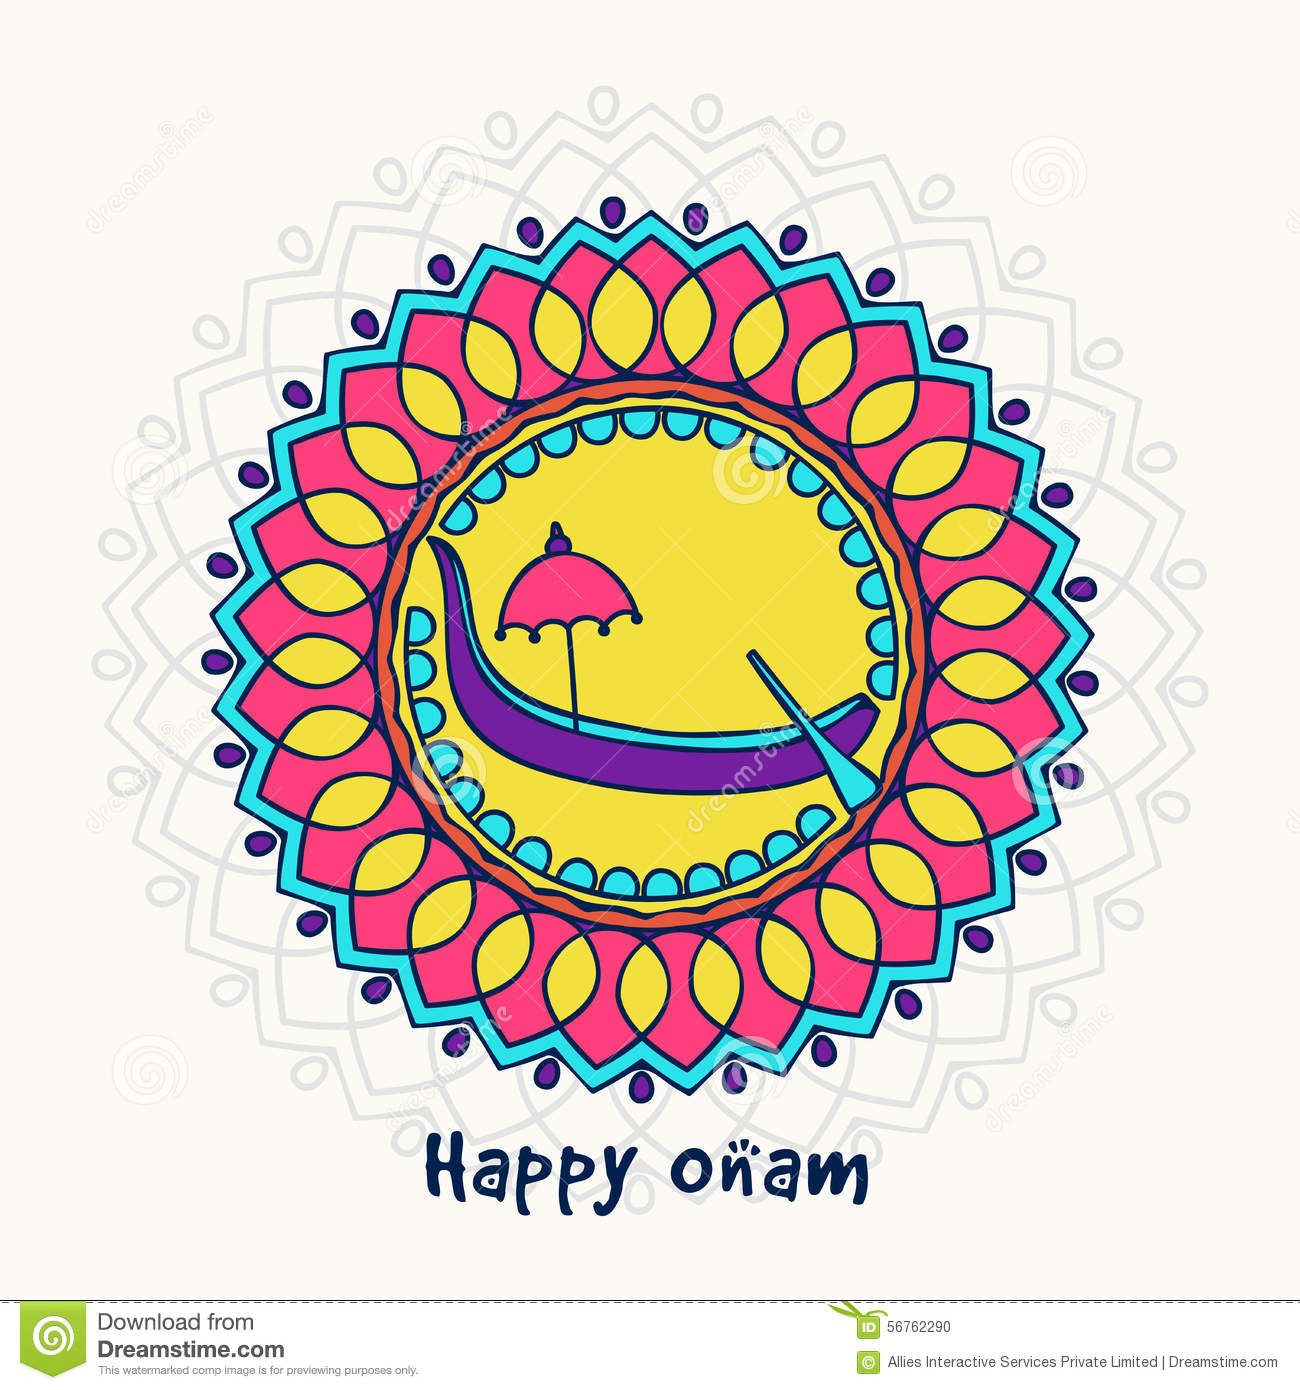 Greeting card for south indian festival onam stock illustration greeting card for south indian festival onam royalty free illustration kristyandbryce Image collections